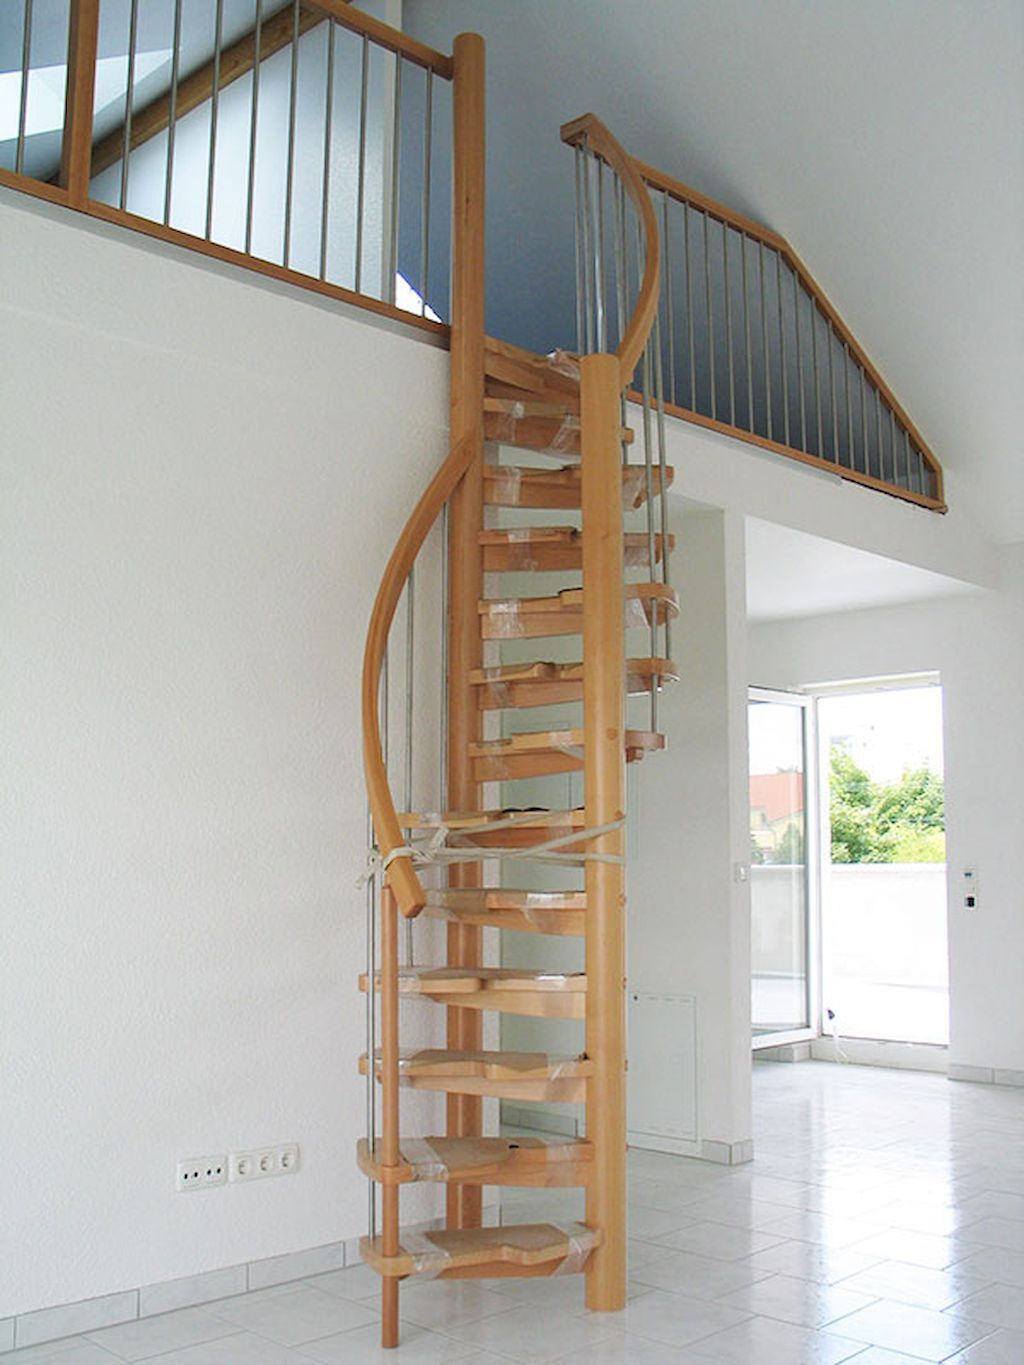 Really Nice But 2 Snags Climbing Stairs When Your Arms Are Full